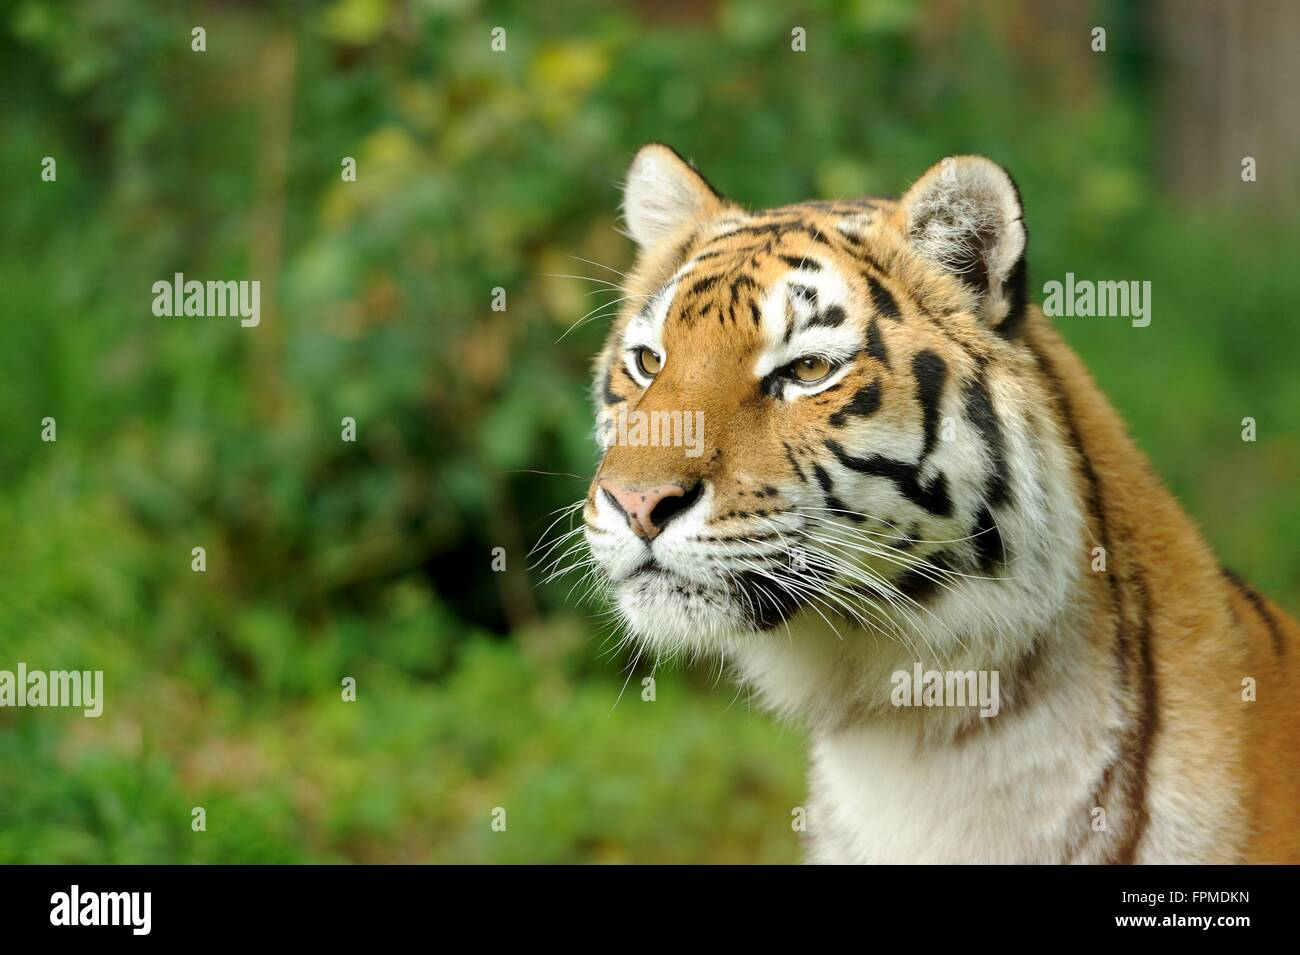 Close-up belle tiger in grass Photo Stock